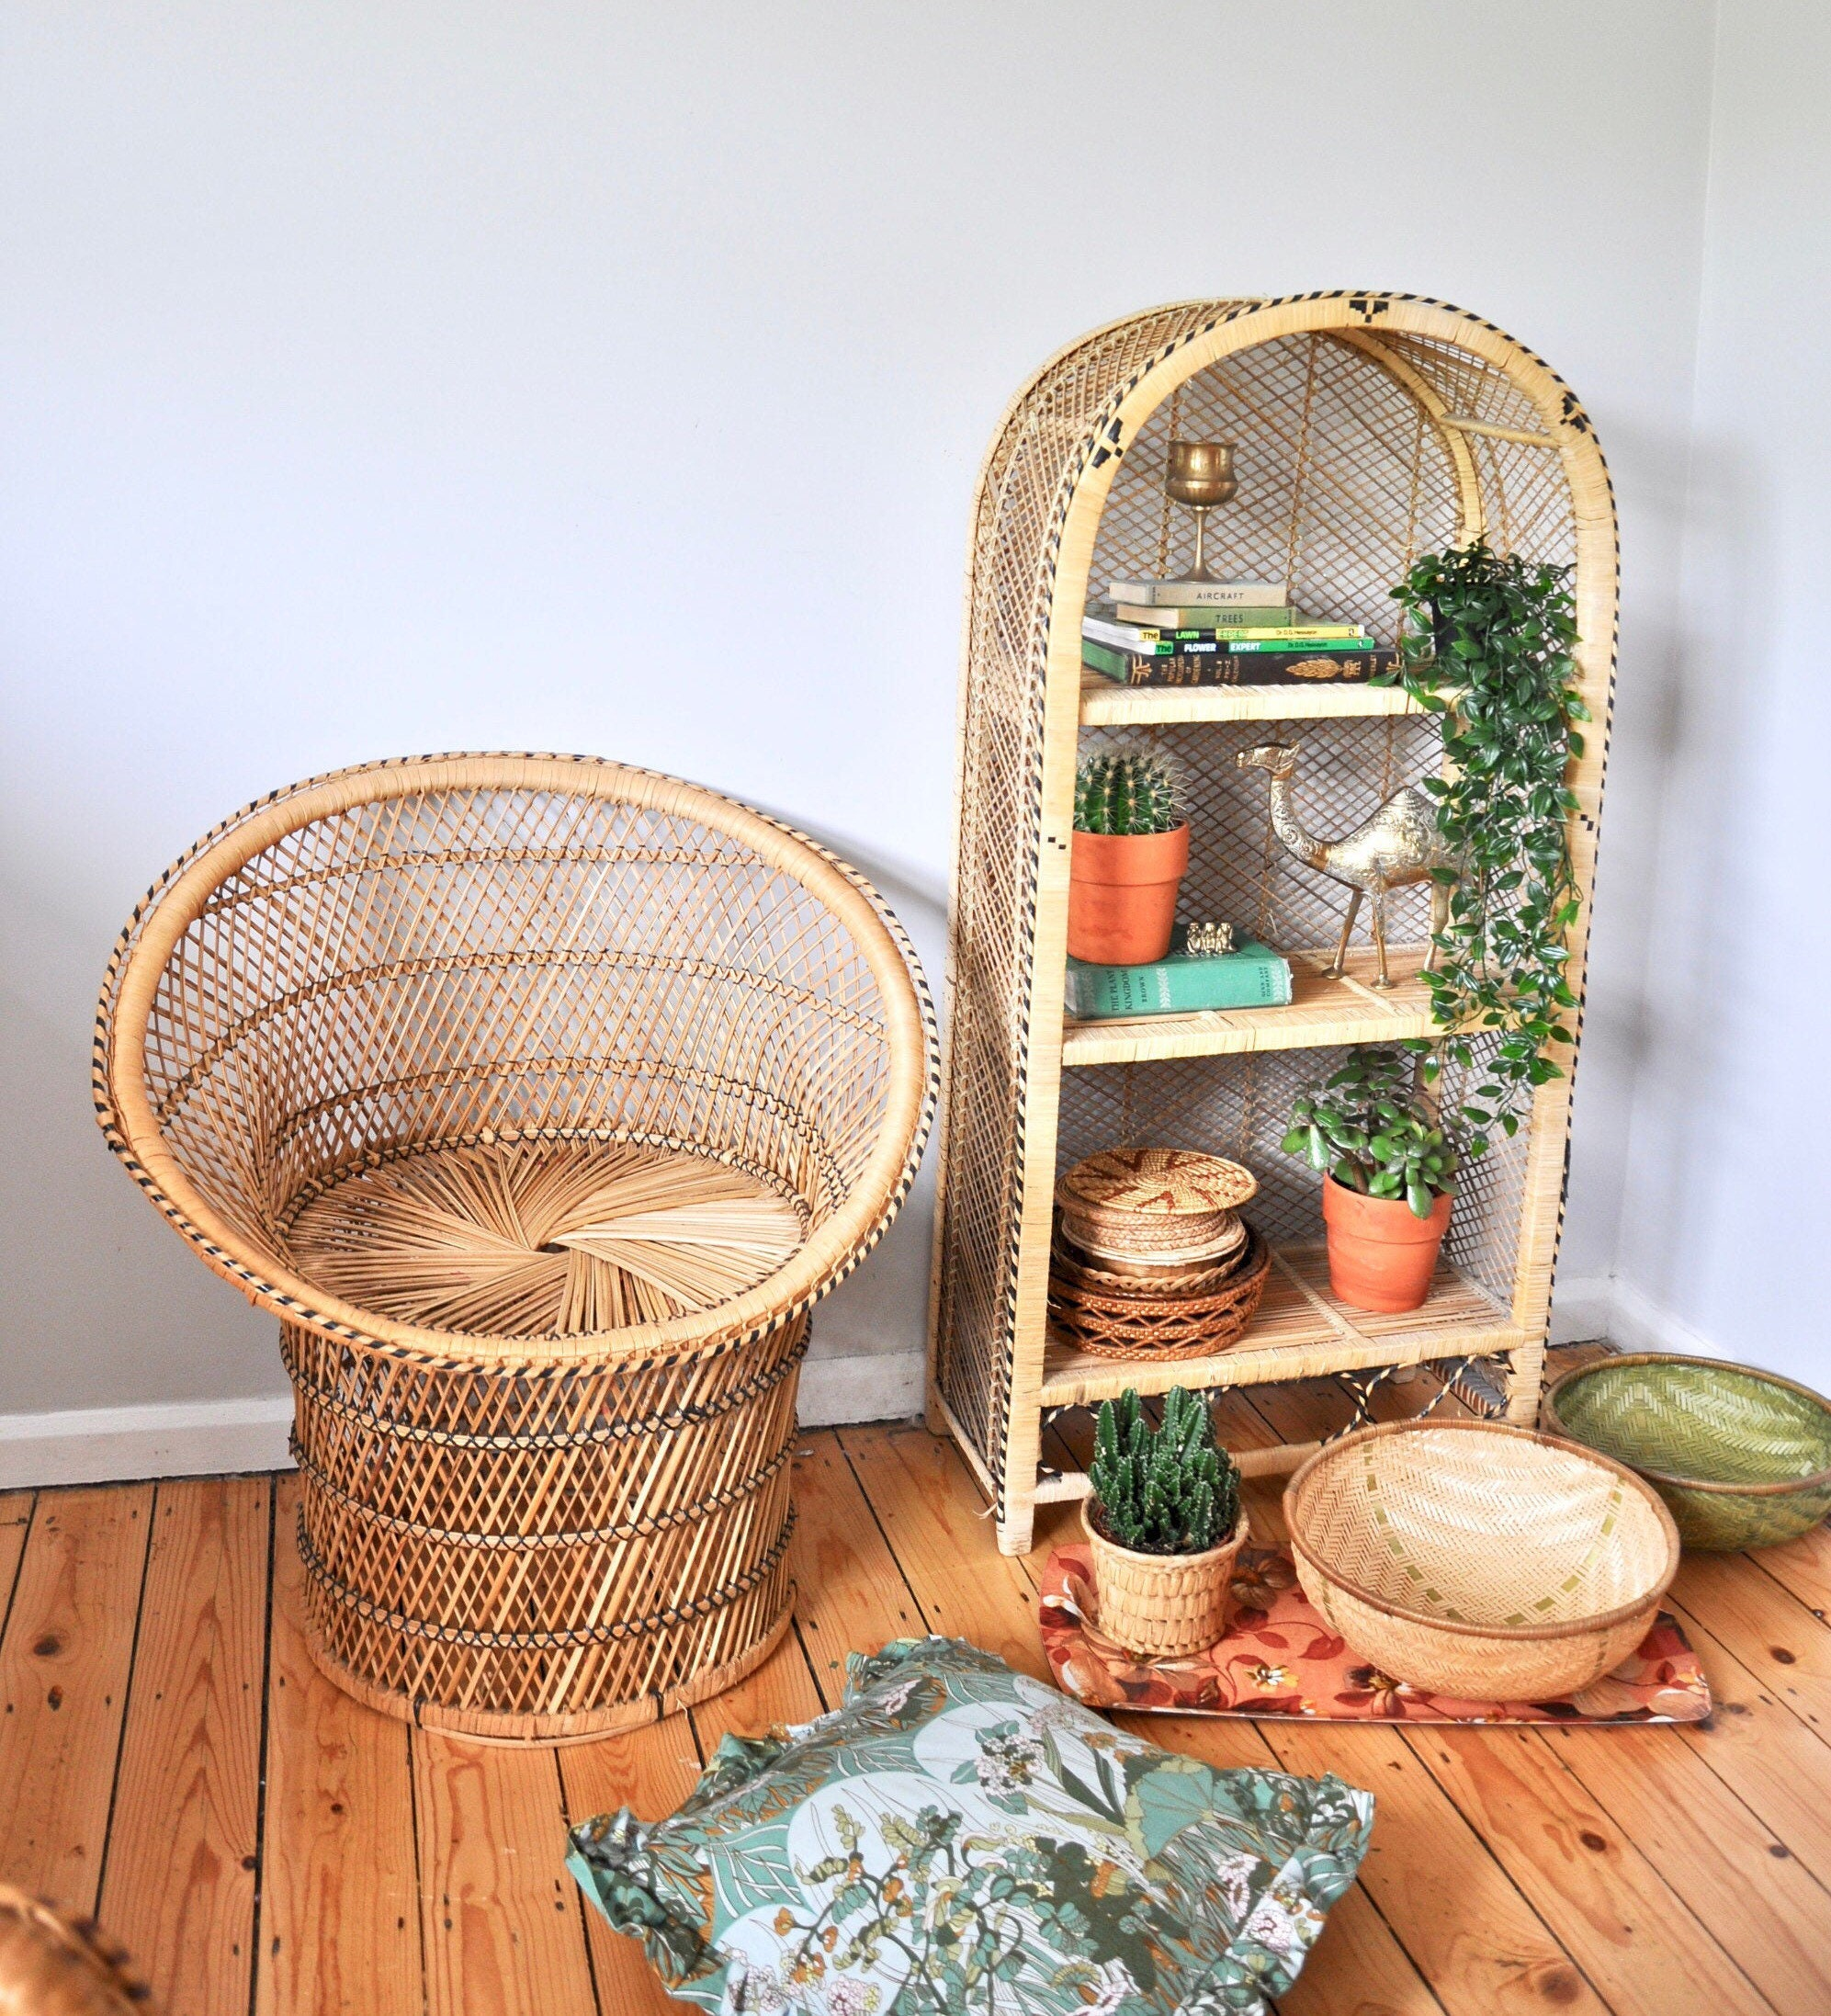 Vintage wicker peacock style tub chair from the 1970s, boho decor